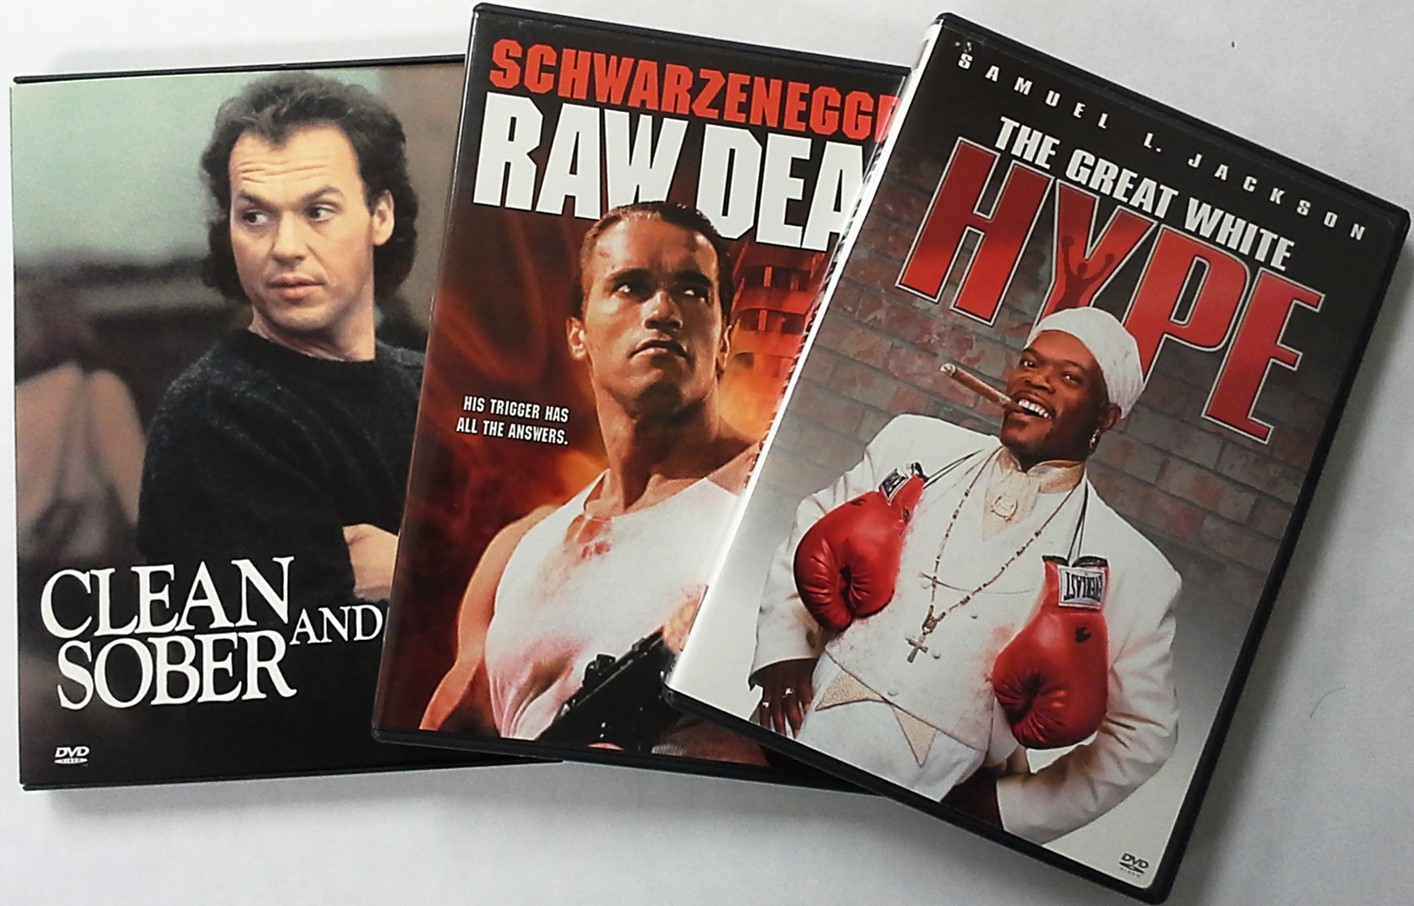 DVD movies new releases such as Clean and Sober, Raw Deal, and The Hype, can be found on a variety of website sites like Moviefone, Rotten Tomatoes, or Metacritic.